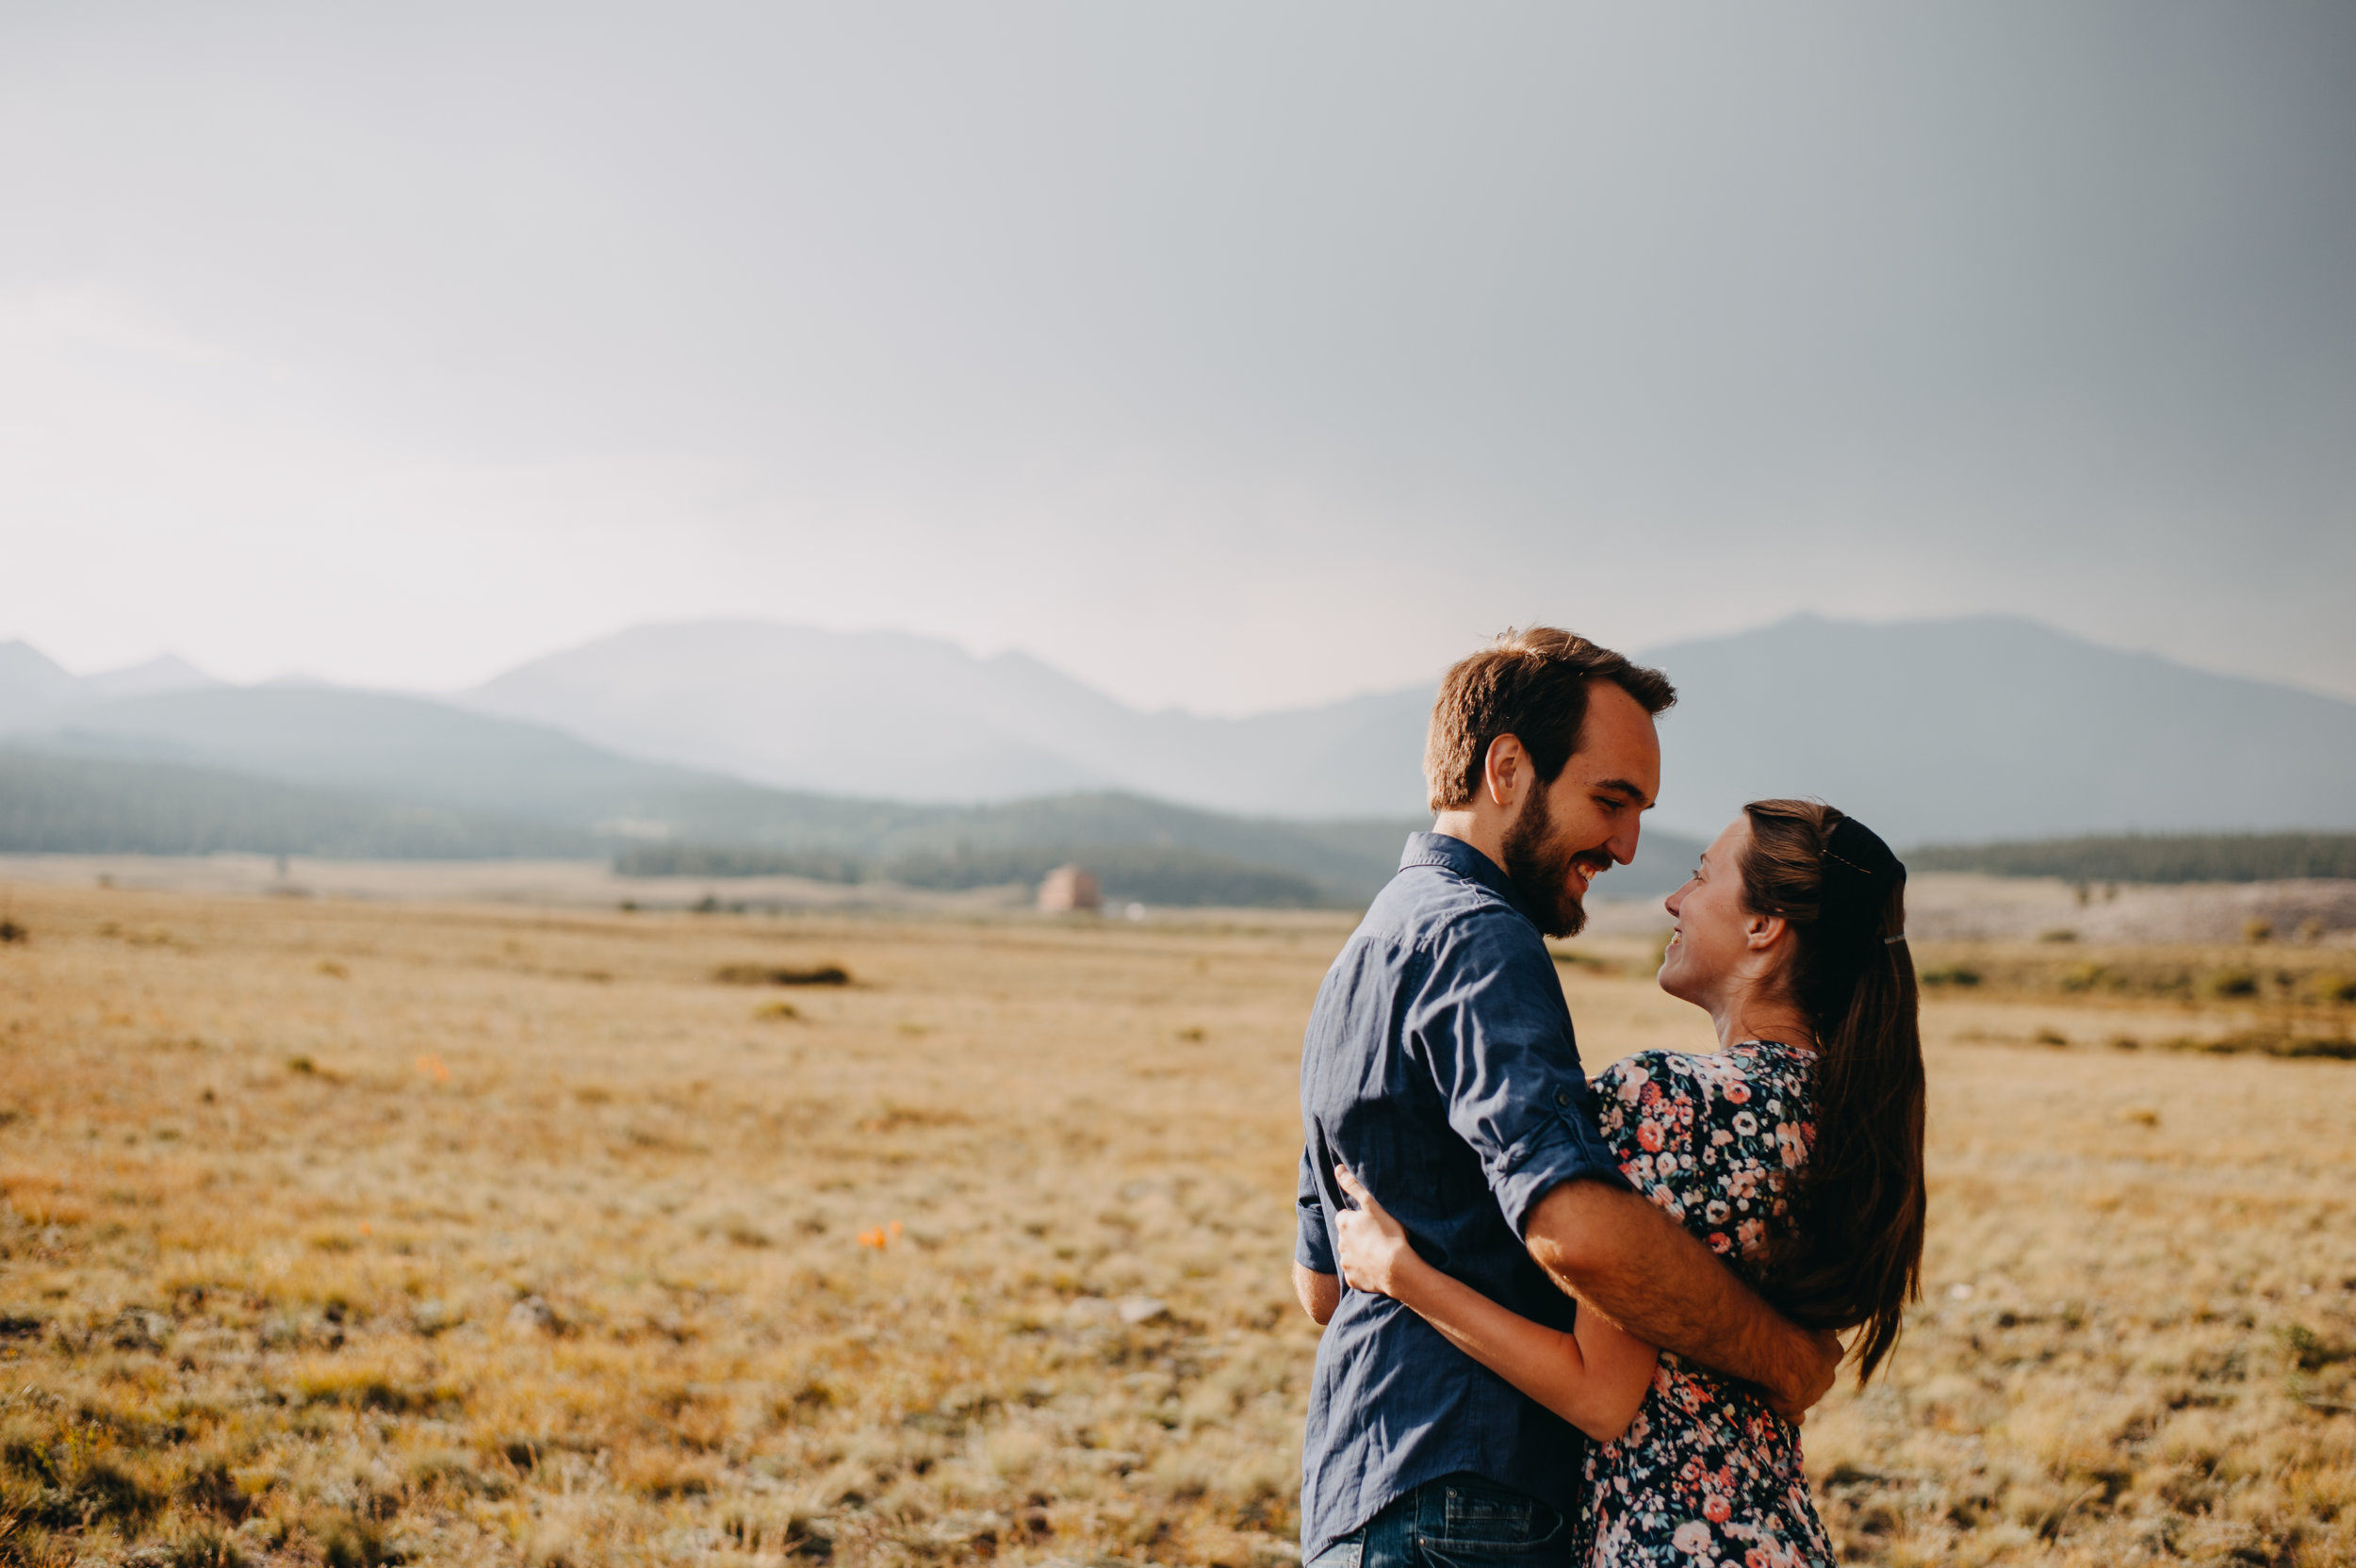 Natural Photography, Lifestyle Engagement Photography, Engagement Poses, Unposed, Unposed photography, Moody Engagement Session, Moody Engagement Photos, Moody Photo, Colorado Engagement, adventurous couple, adventurous engagement photos, adventurous engagement,